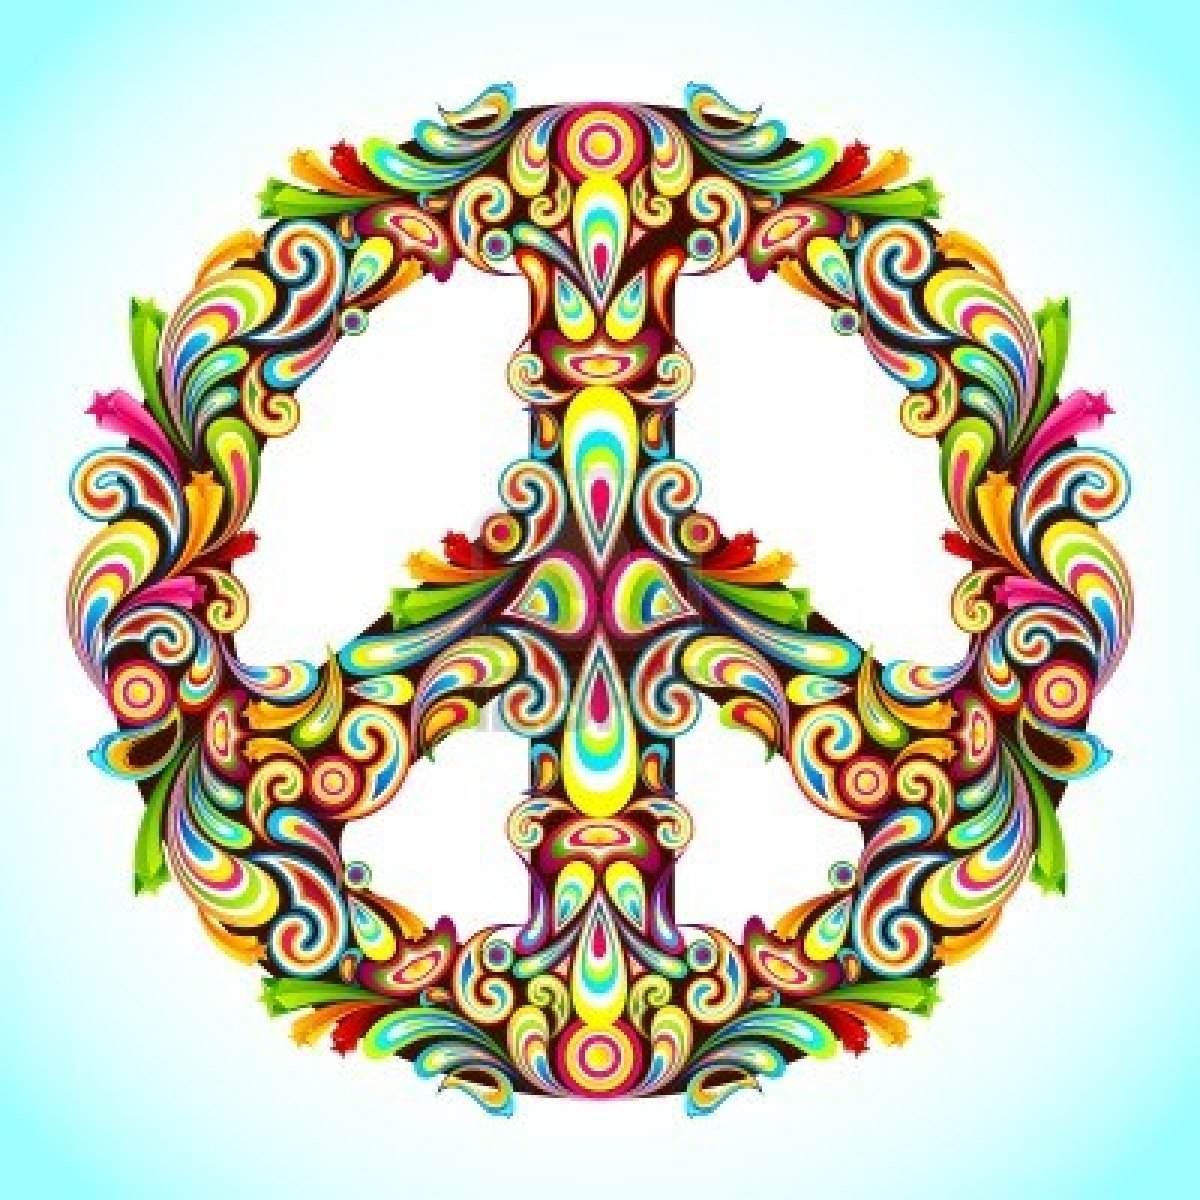 mandala madness cool peace mandalas and art